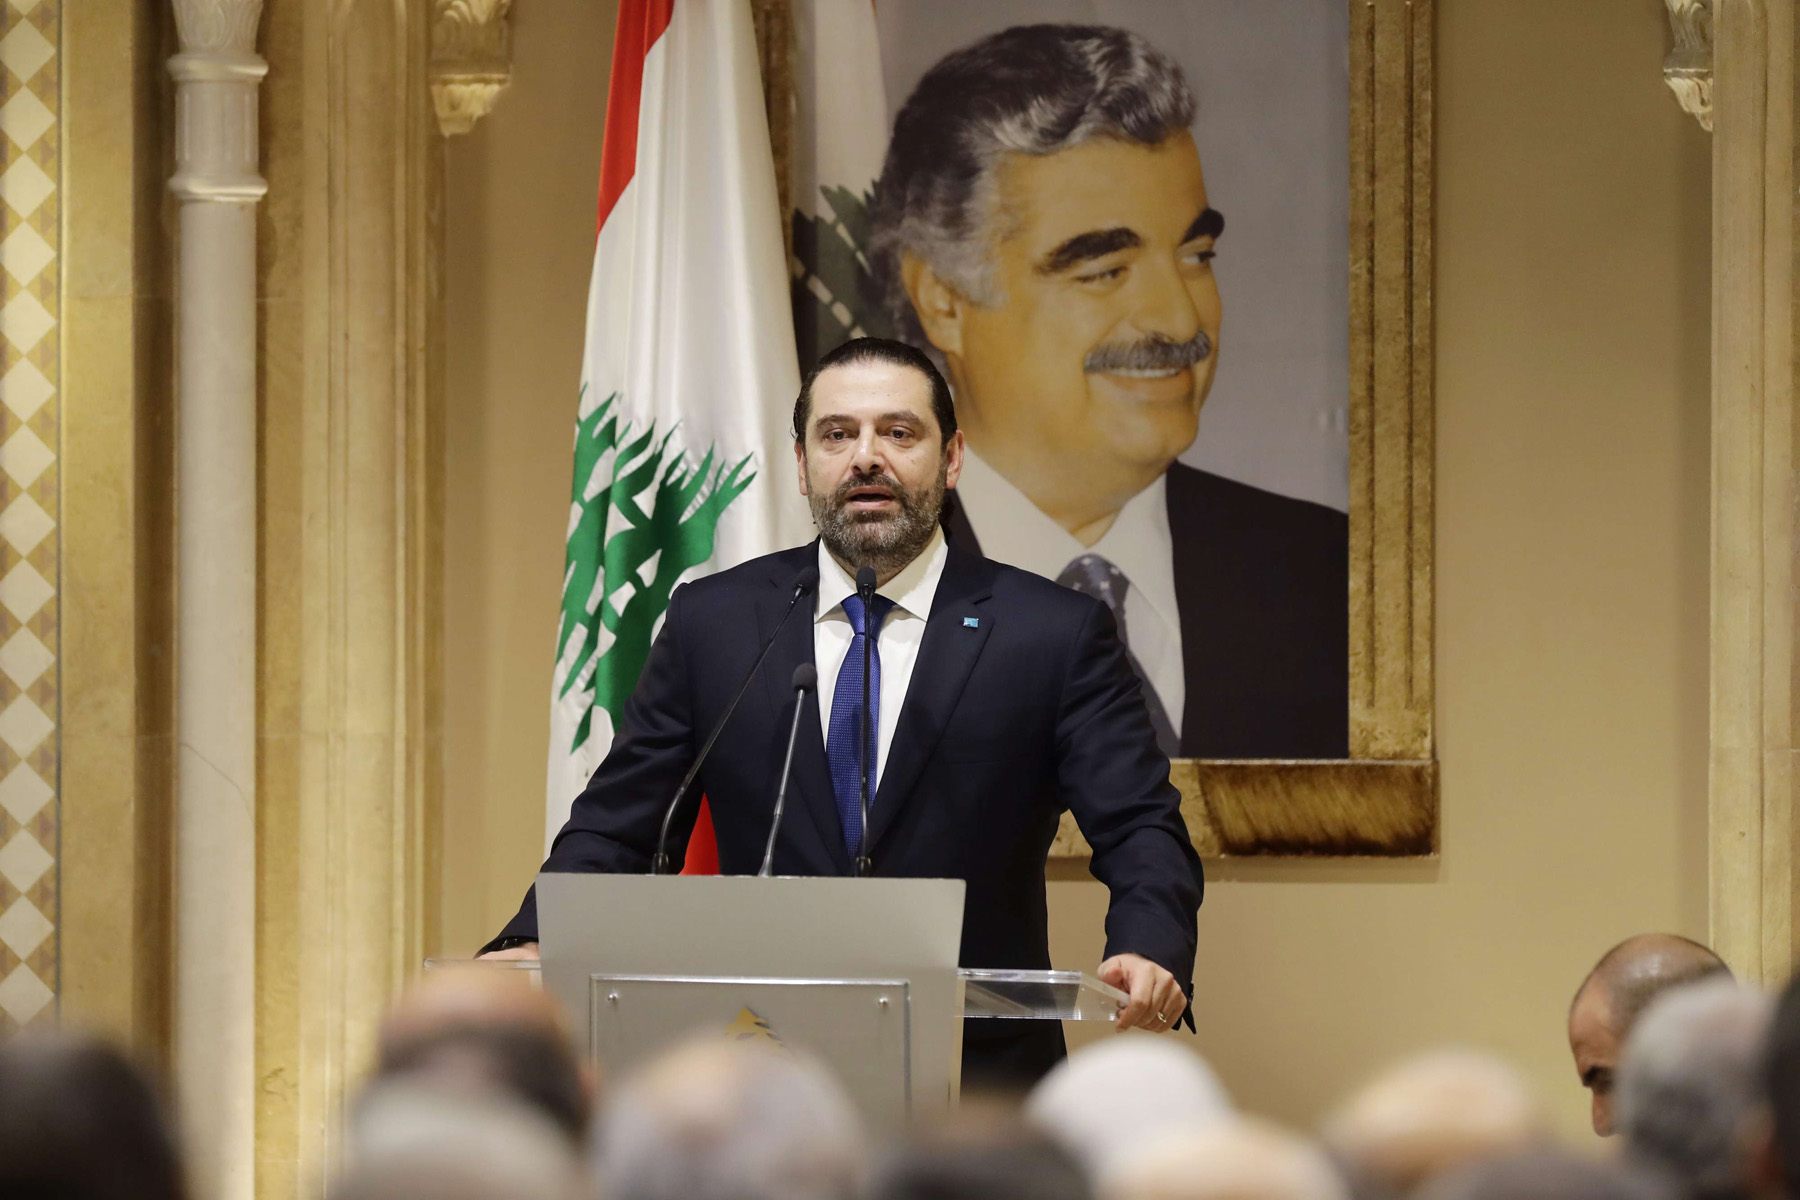 Lebanese Prime Minsiter Saad Hariri speaks during a press conference at his residence in downtown Beirut on November 13, 2018. (AFP)